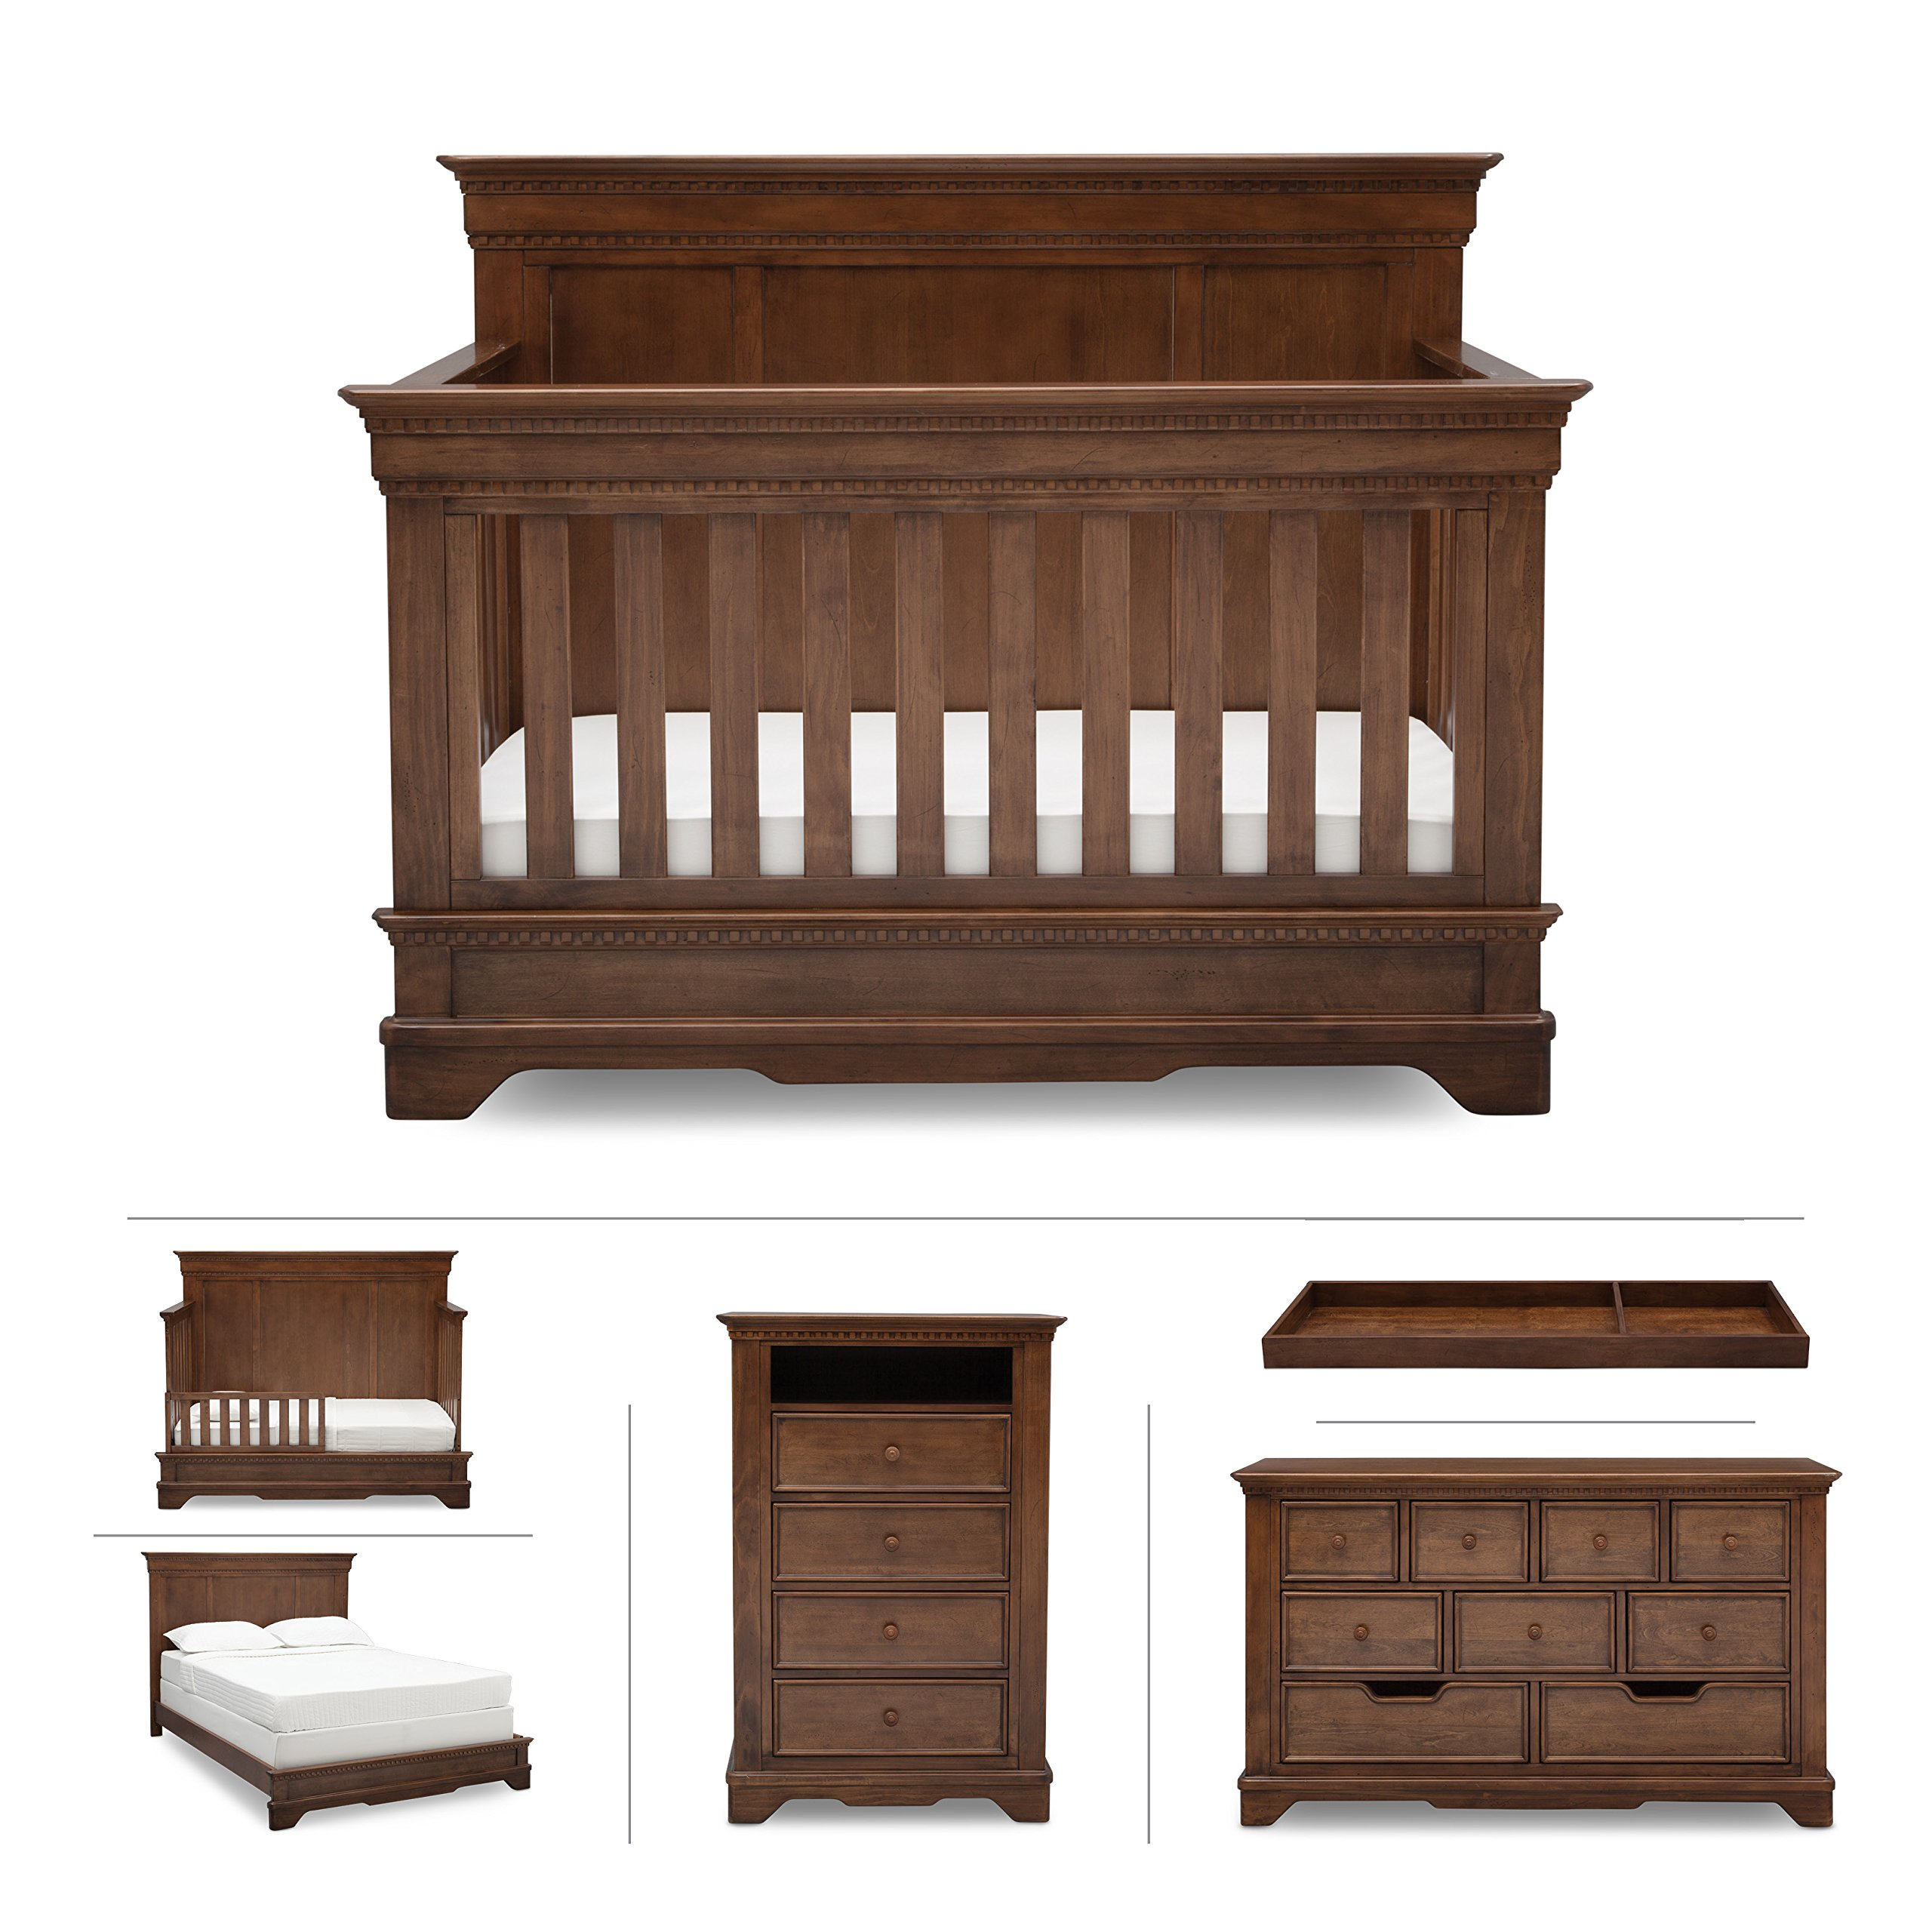 Baby Nursery Furniture Set in Brown Antique – Convertible Crib, Dresser, Chest, Changing Top, Toddler and Full Size Conversions – 6 Piece Simmons Tivoli Collection